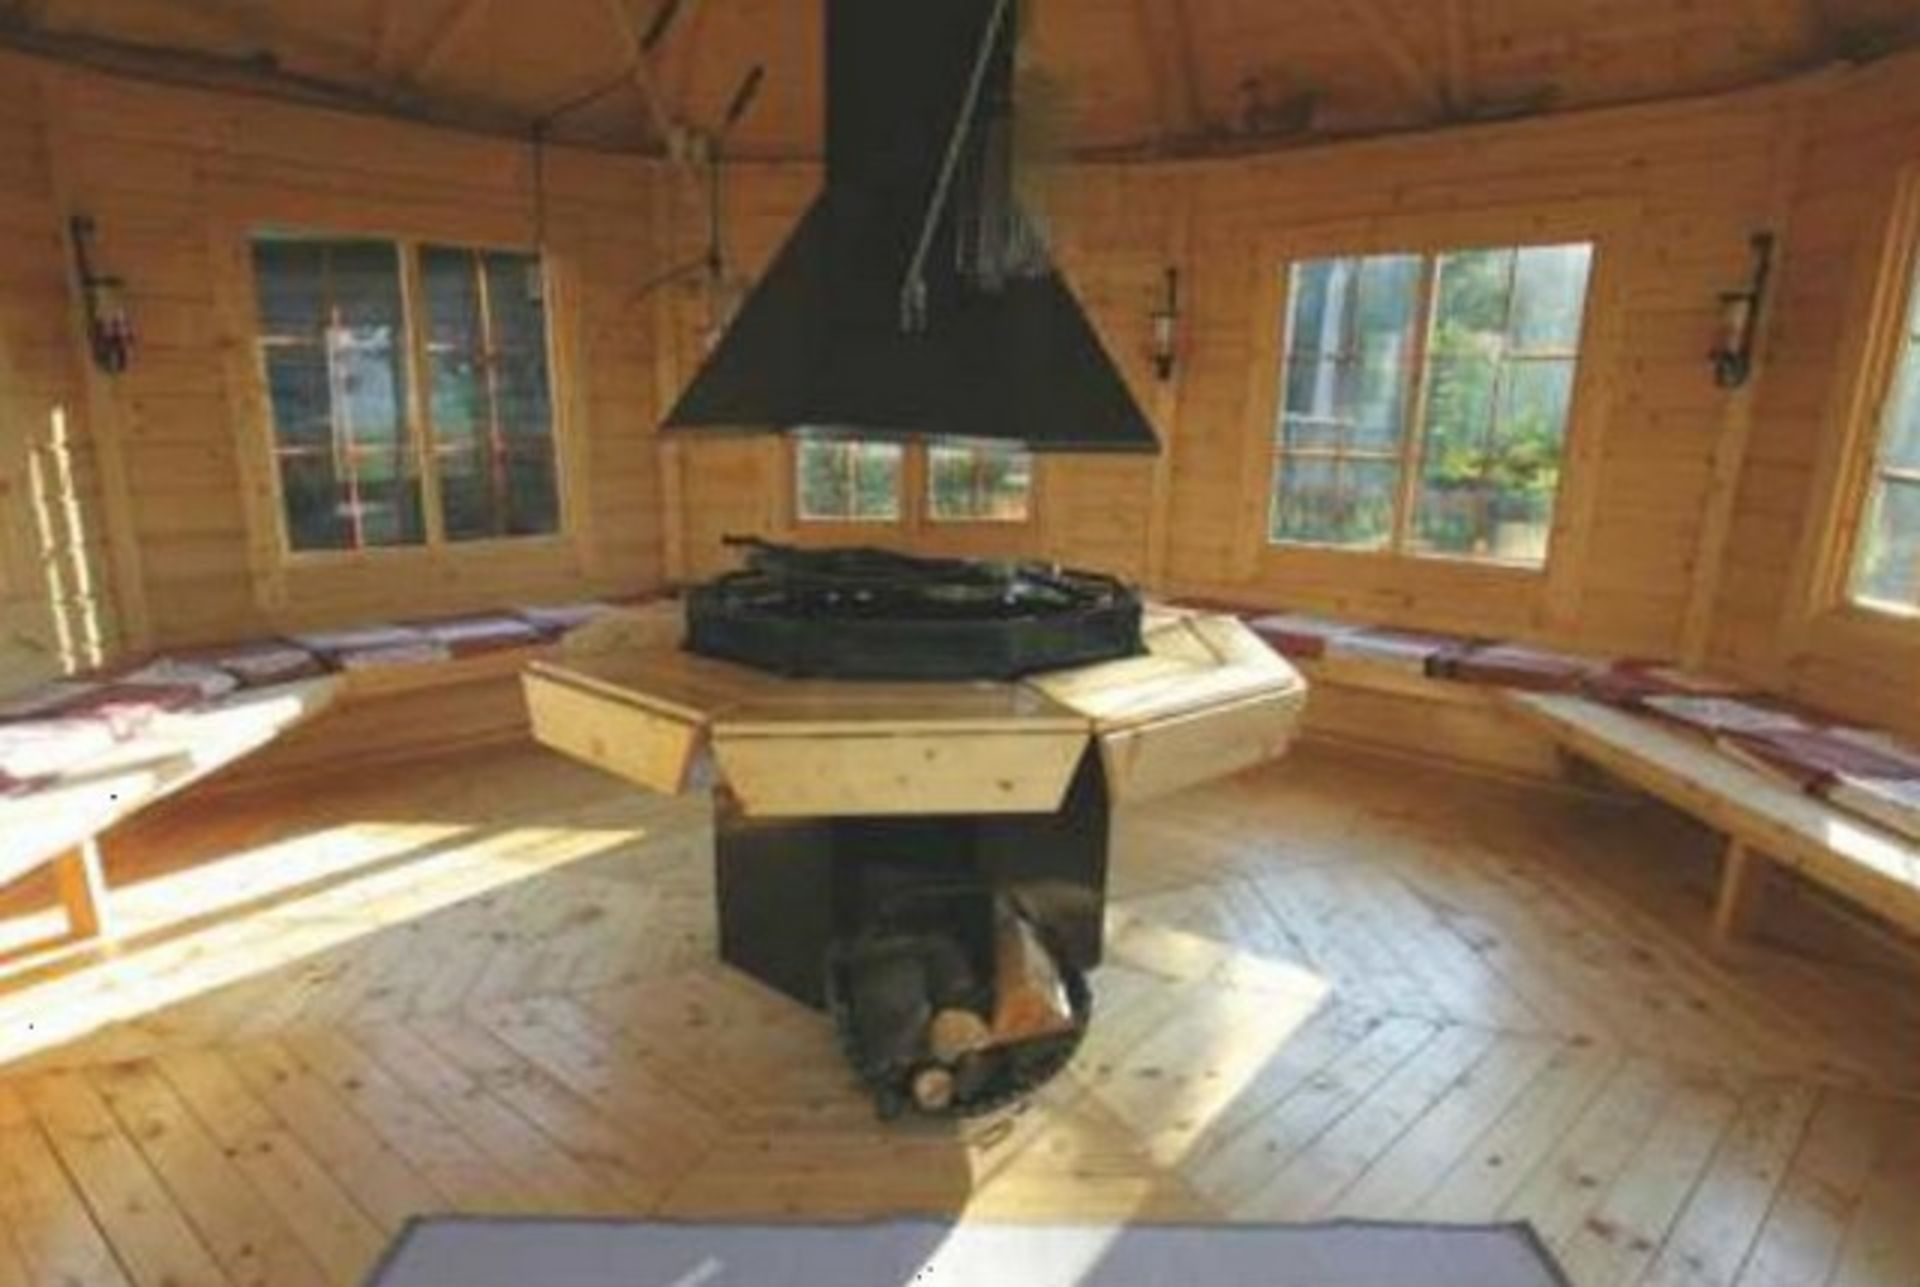 Lot 18034 - V Brand New 16.5m sq 8 Corner Spruce Pavilion - Grill With Cooking platforms and table around the